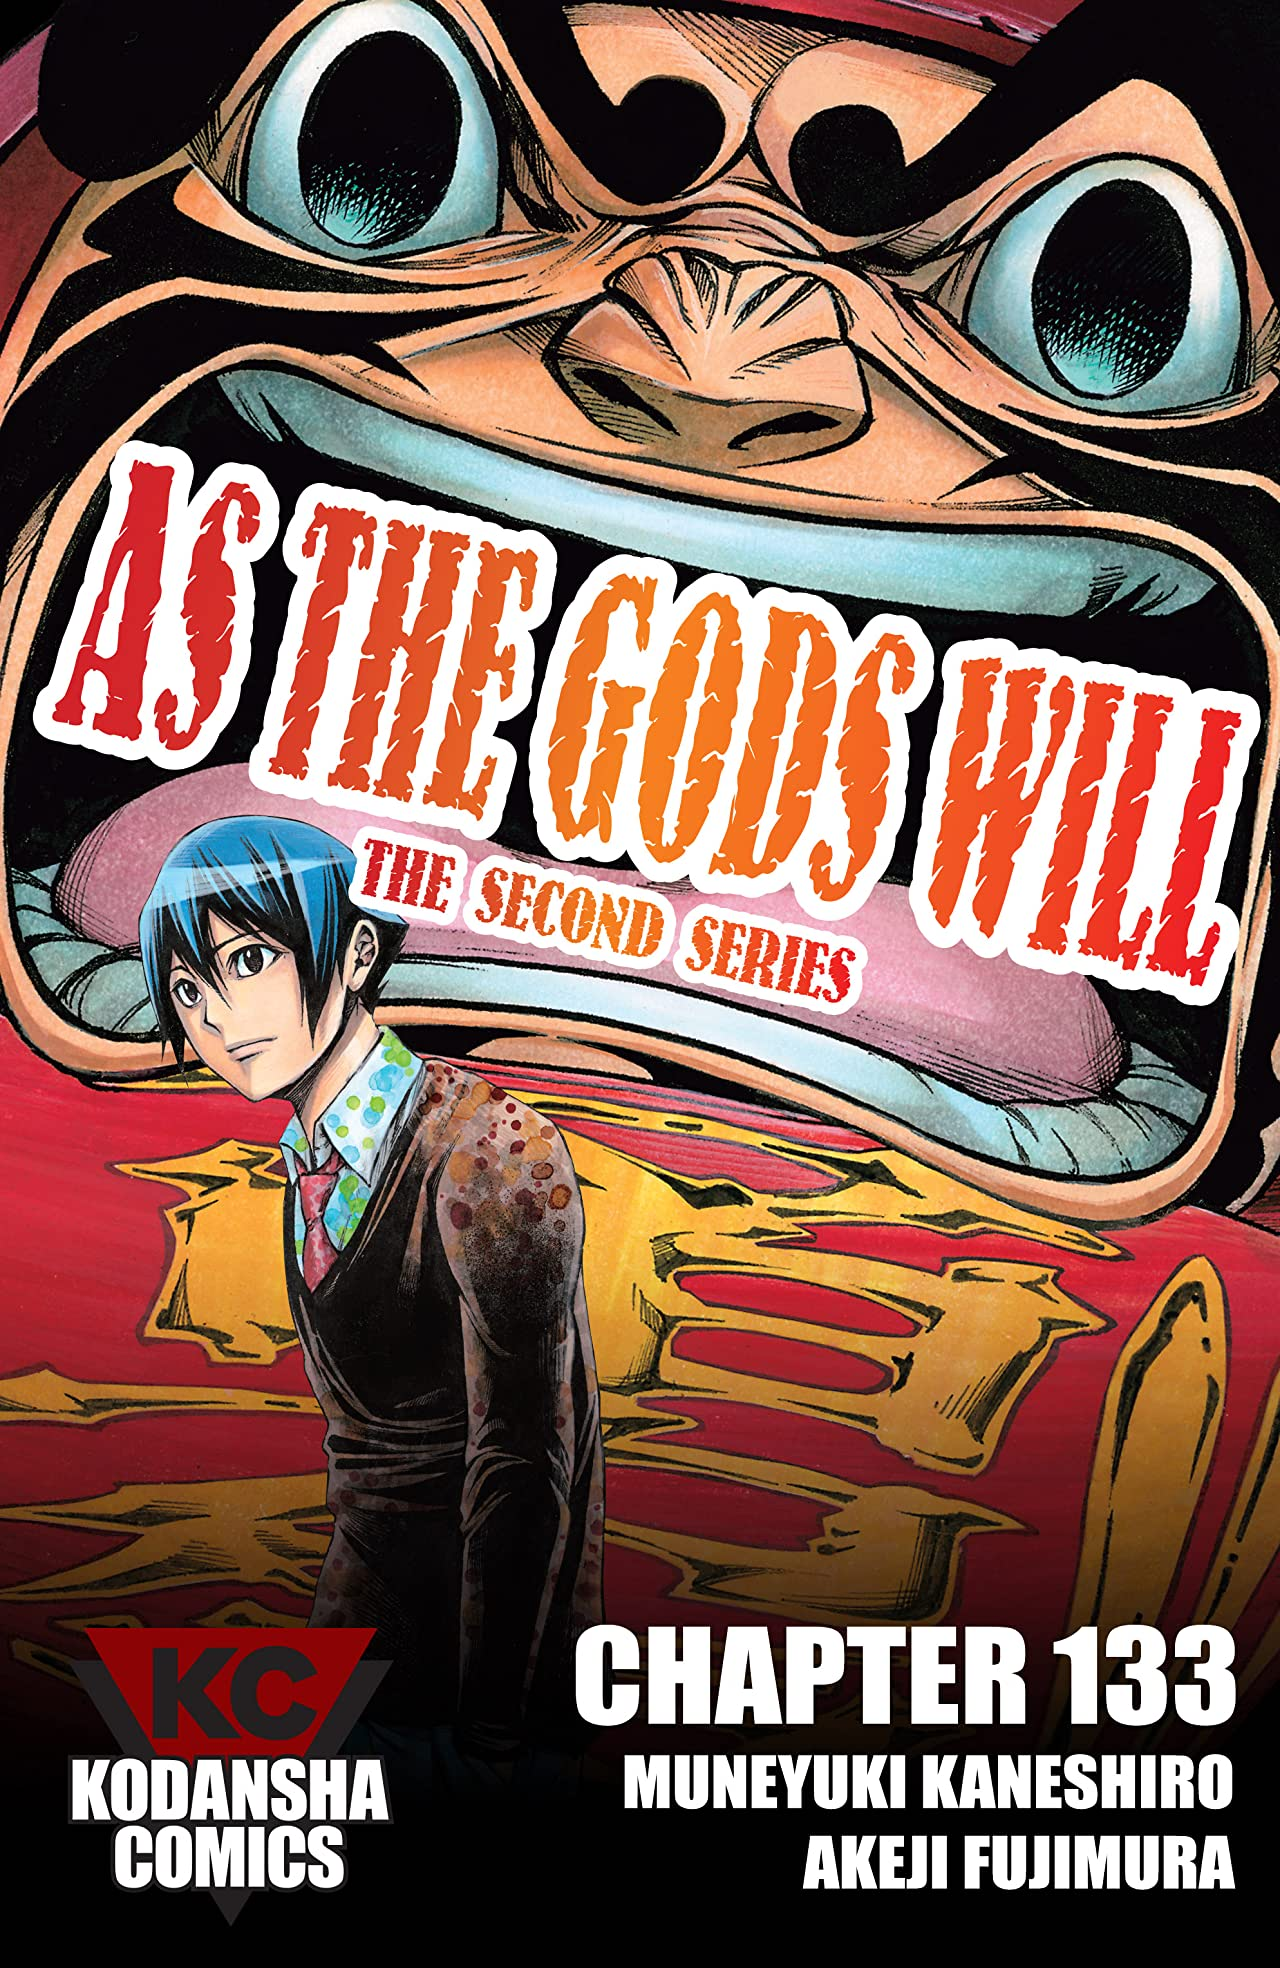 As The Gods Will: The Second Series #133